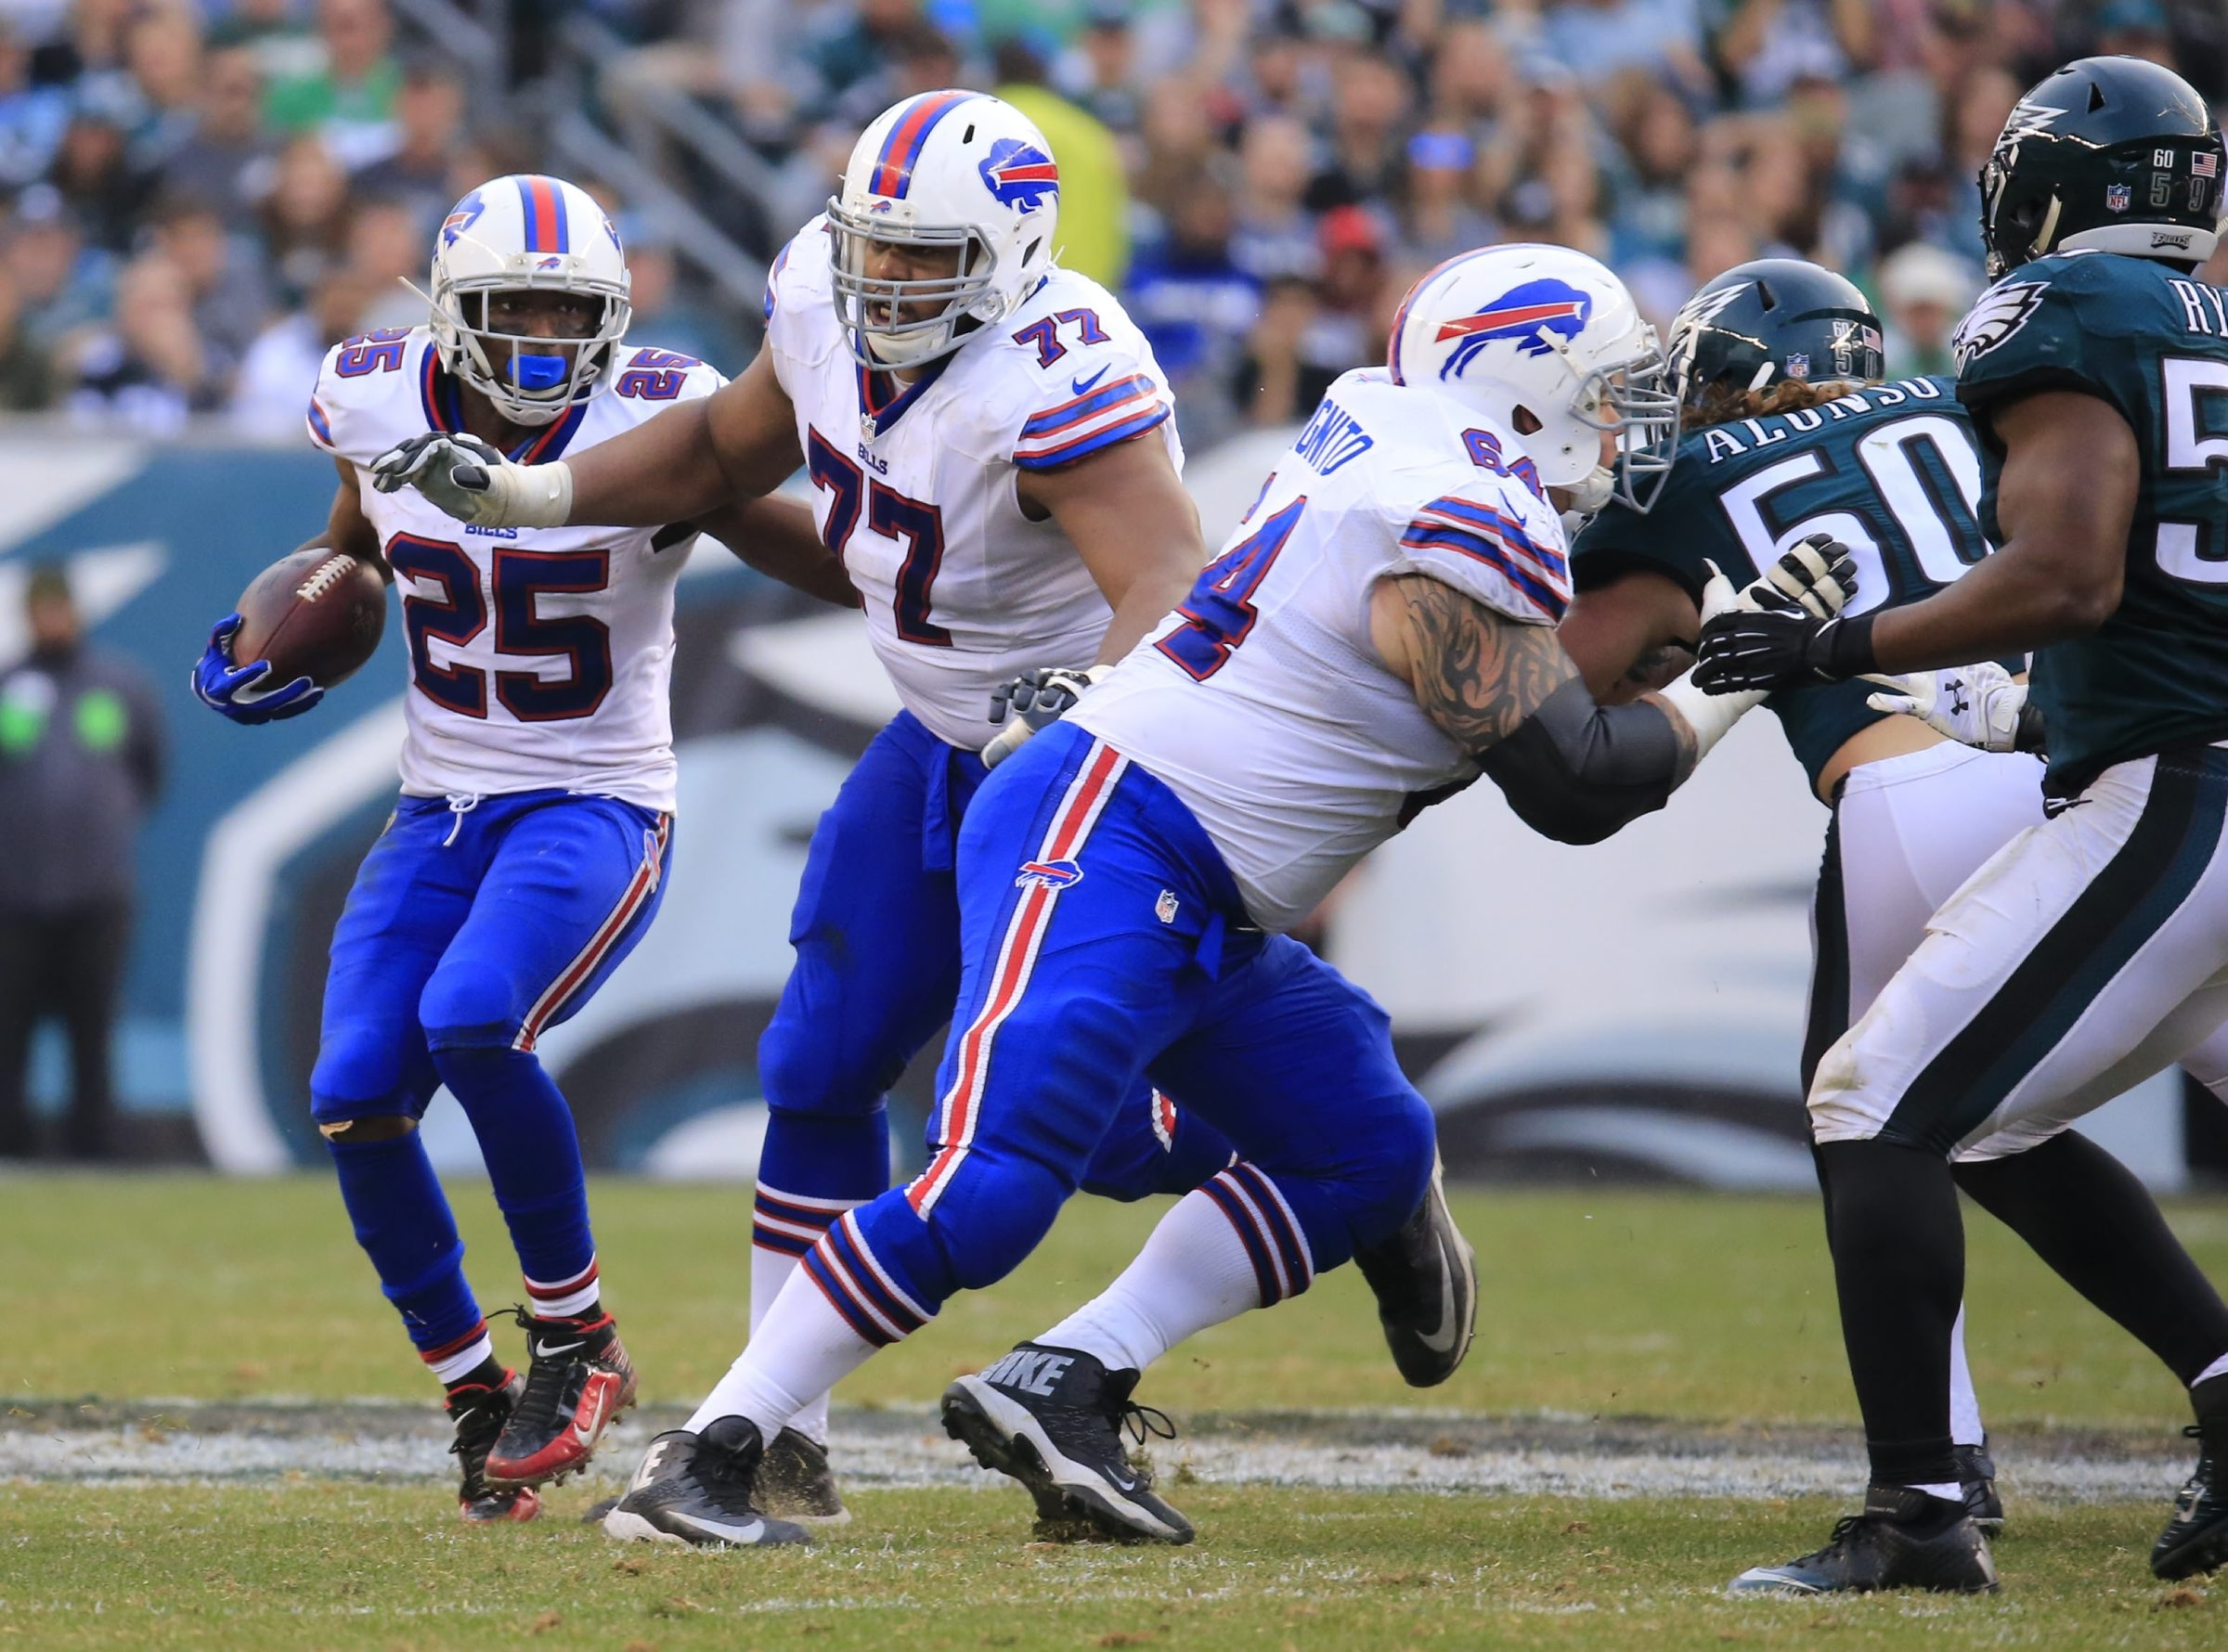 Buffalo Bills LeSean McCoy follows his blocks against the Philadelphia Eagles during second half action at Lincoln Financial Field on Sunday, Dec. 13, 2015.  (Harry Scull Jr./Buffalo News)